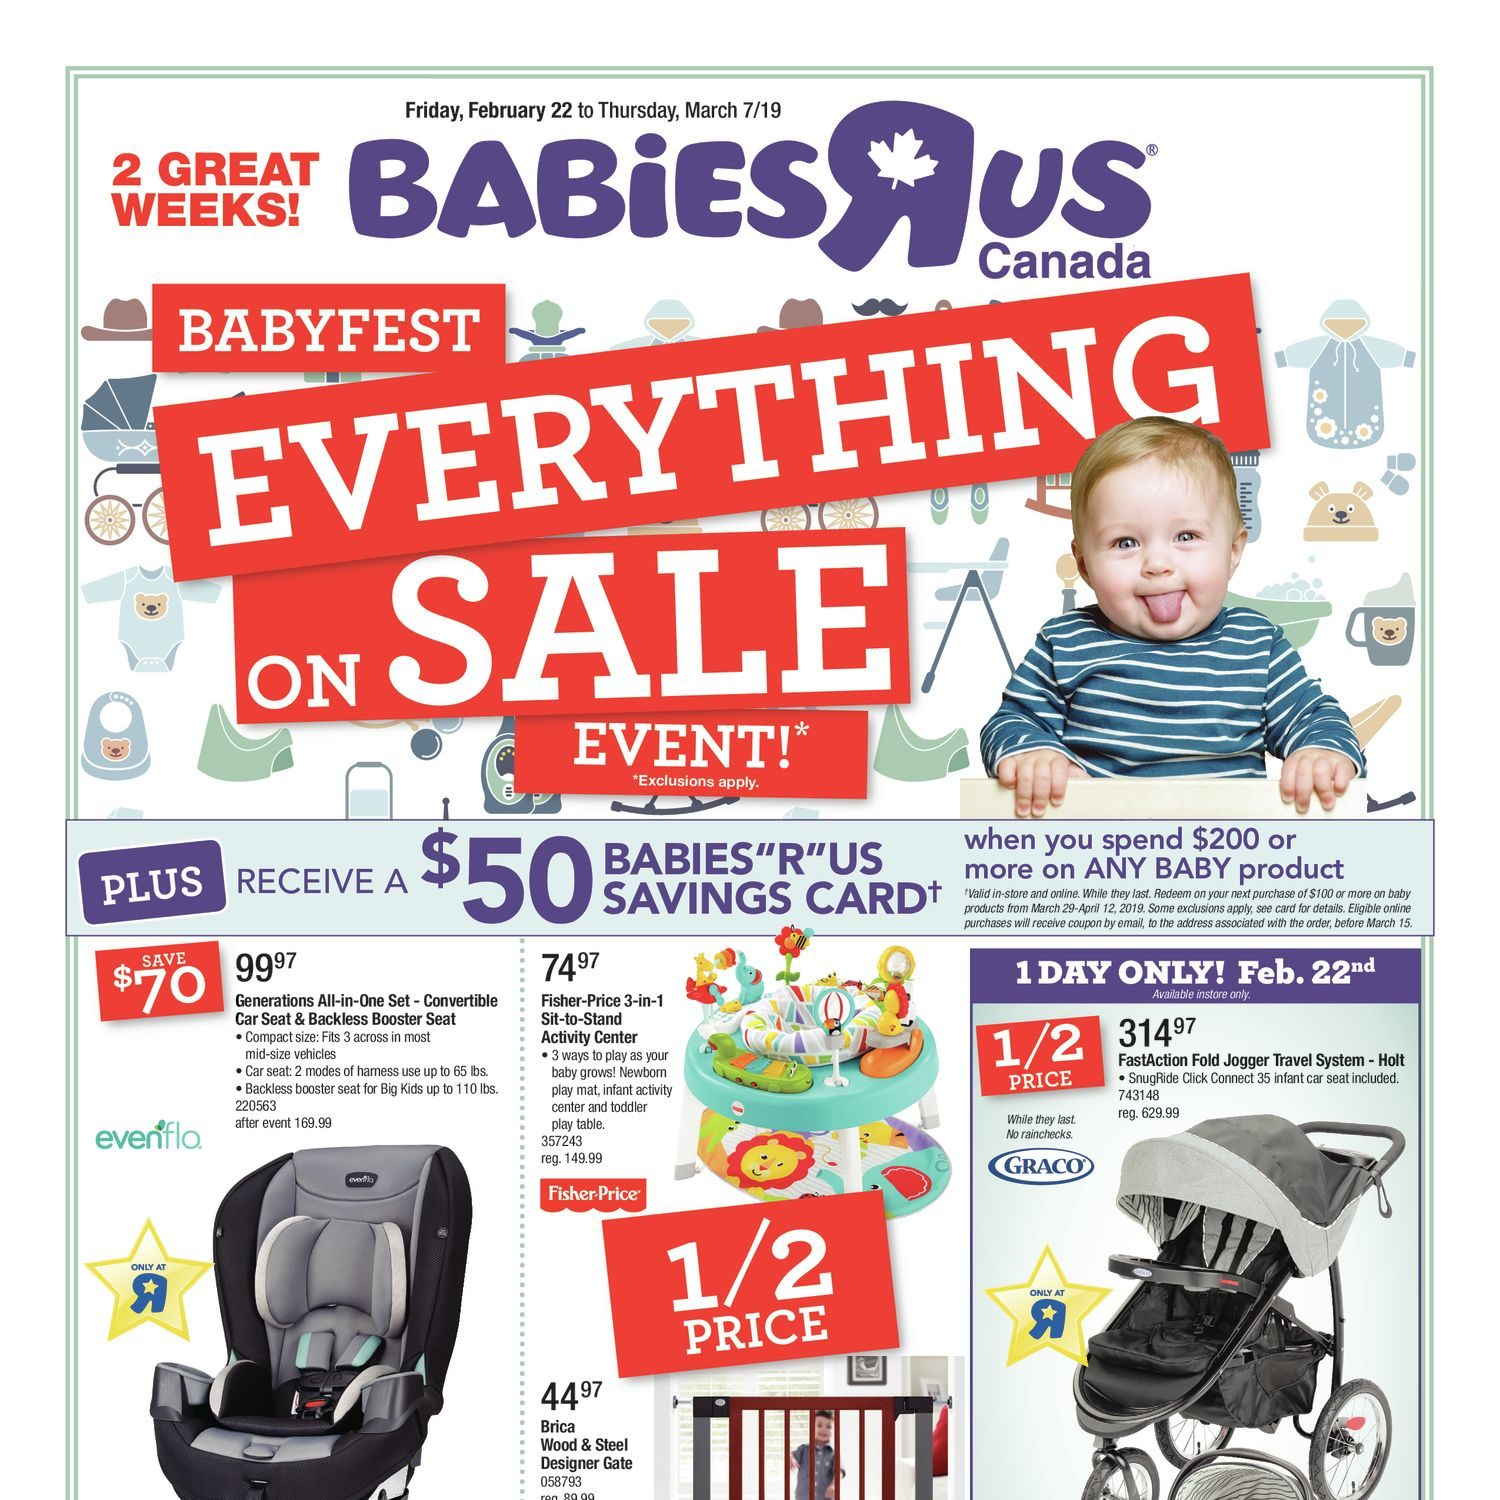 5ba6aed9c8a Babies R Us Weekly Flyer - 2 Great Weeks! - Babyfest Everything On Sale  Event! - Feb 22 – Mar 7 - RedFlagDeals.com